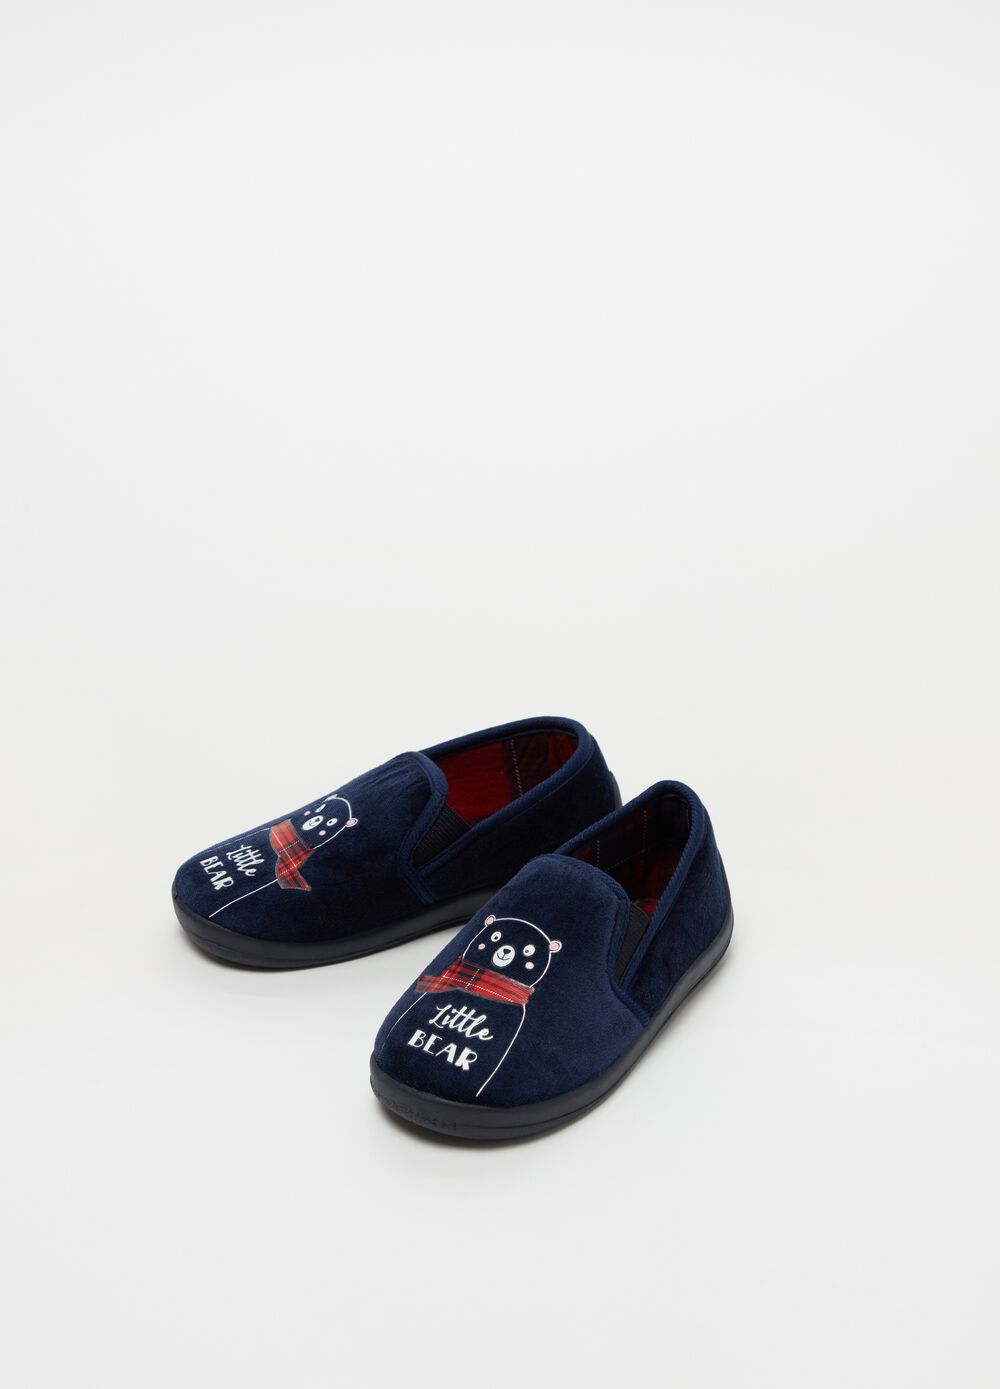 Slippers with bear embroidery and tartan lining